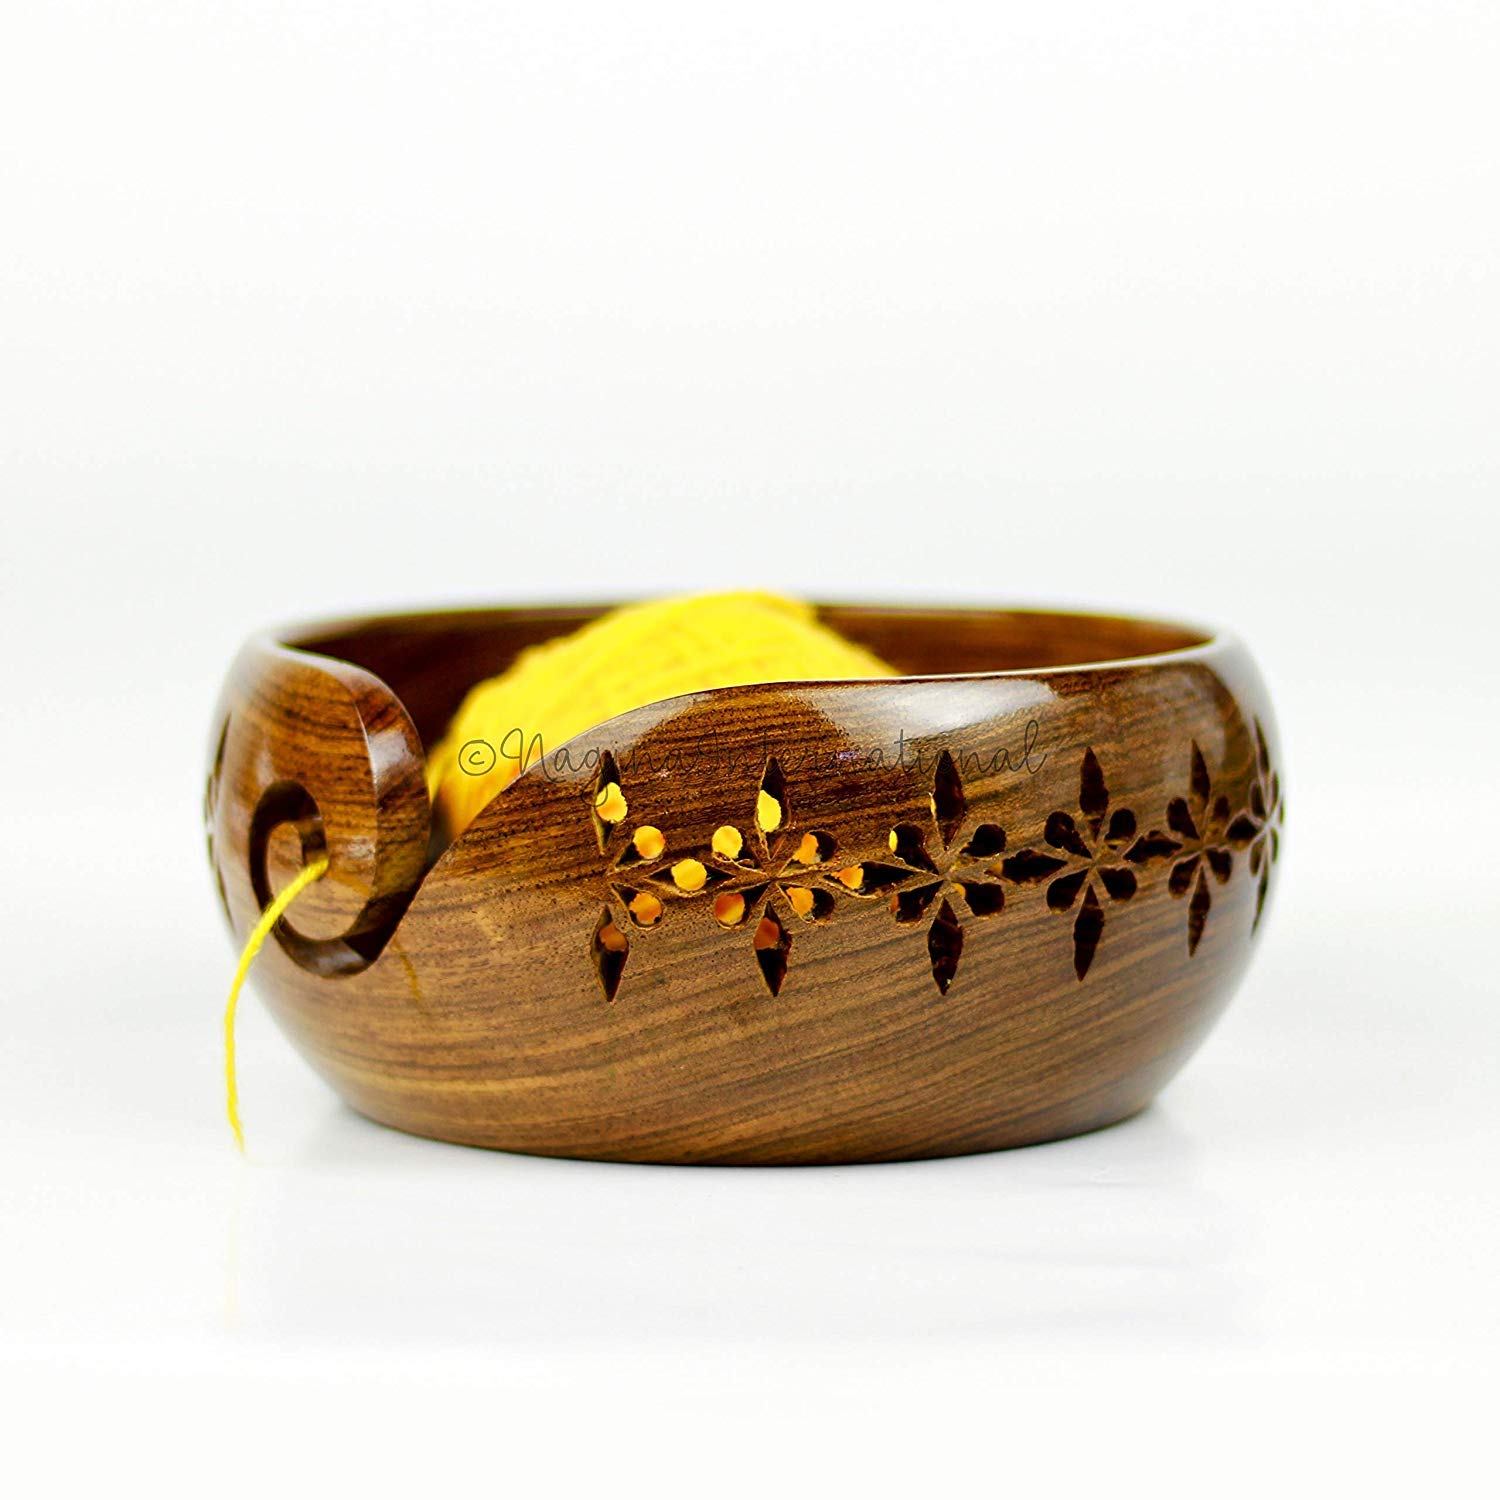 Rosewood Crafted Wooden Yarn Storage Bowl with Carved Holes & Drills | Knitting Crochet Accessories | Nagina International (Medium) by Nagina International (Image #1)